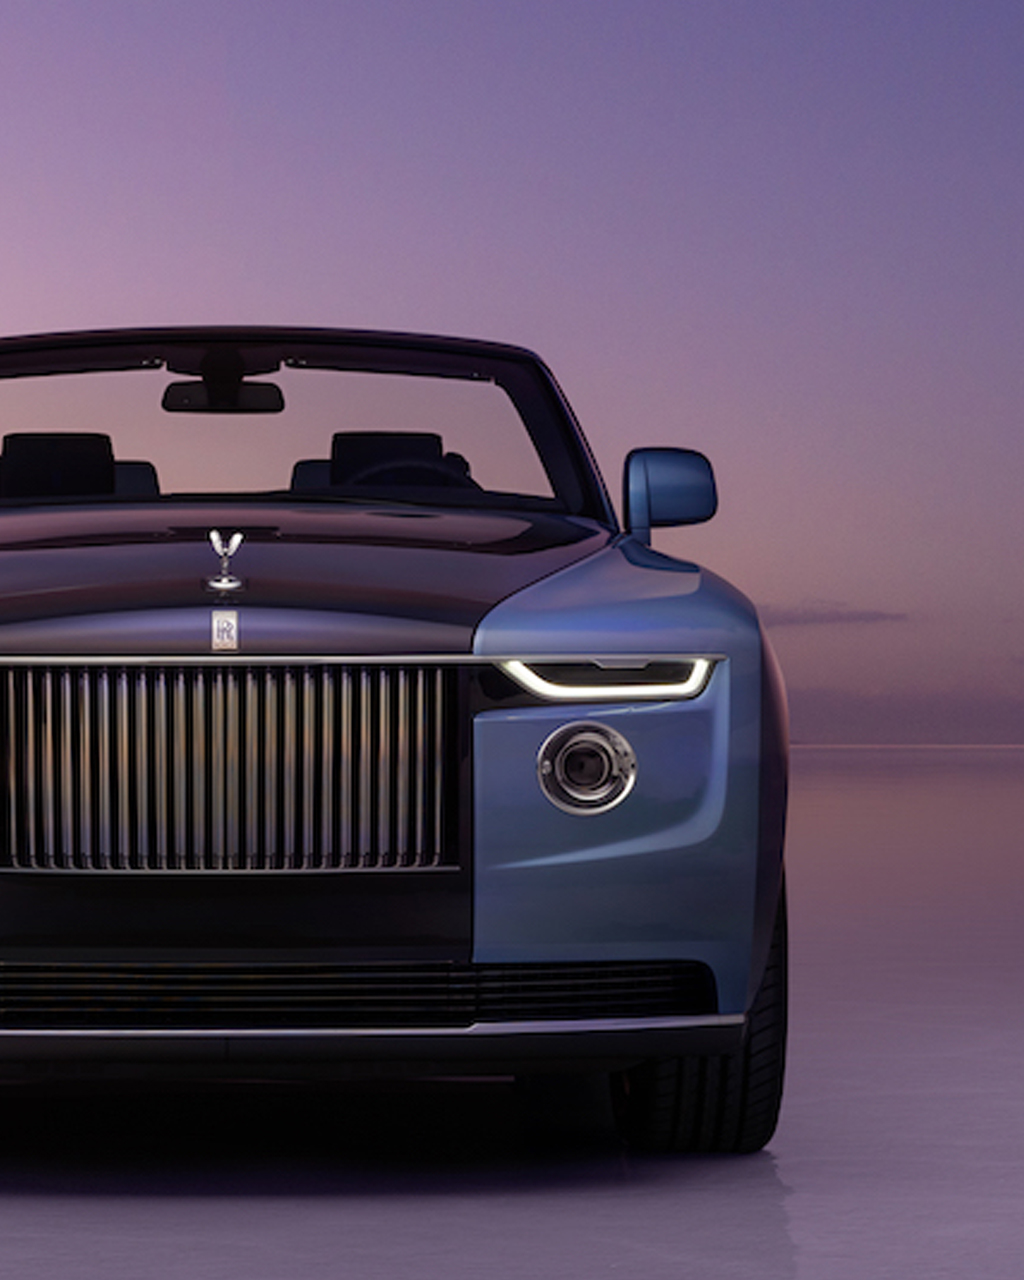 marine blue luxury car Rolls Royce Boat Tail front view on water sky background sunset